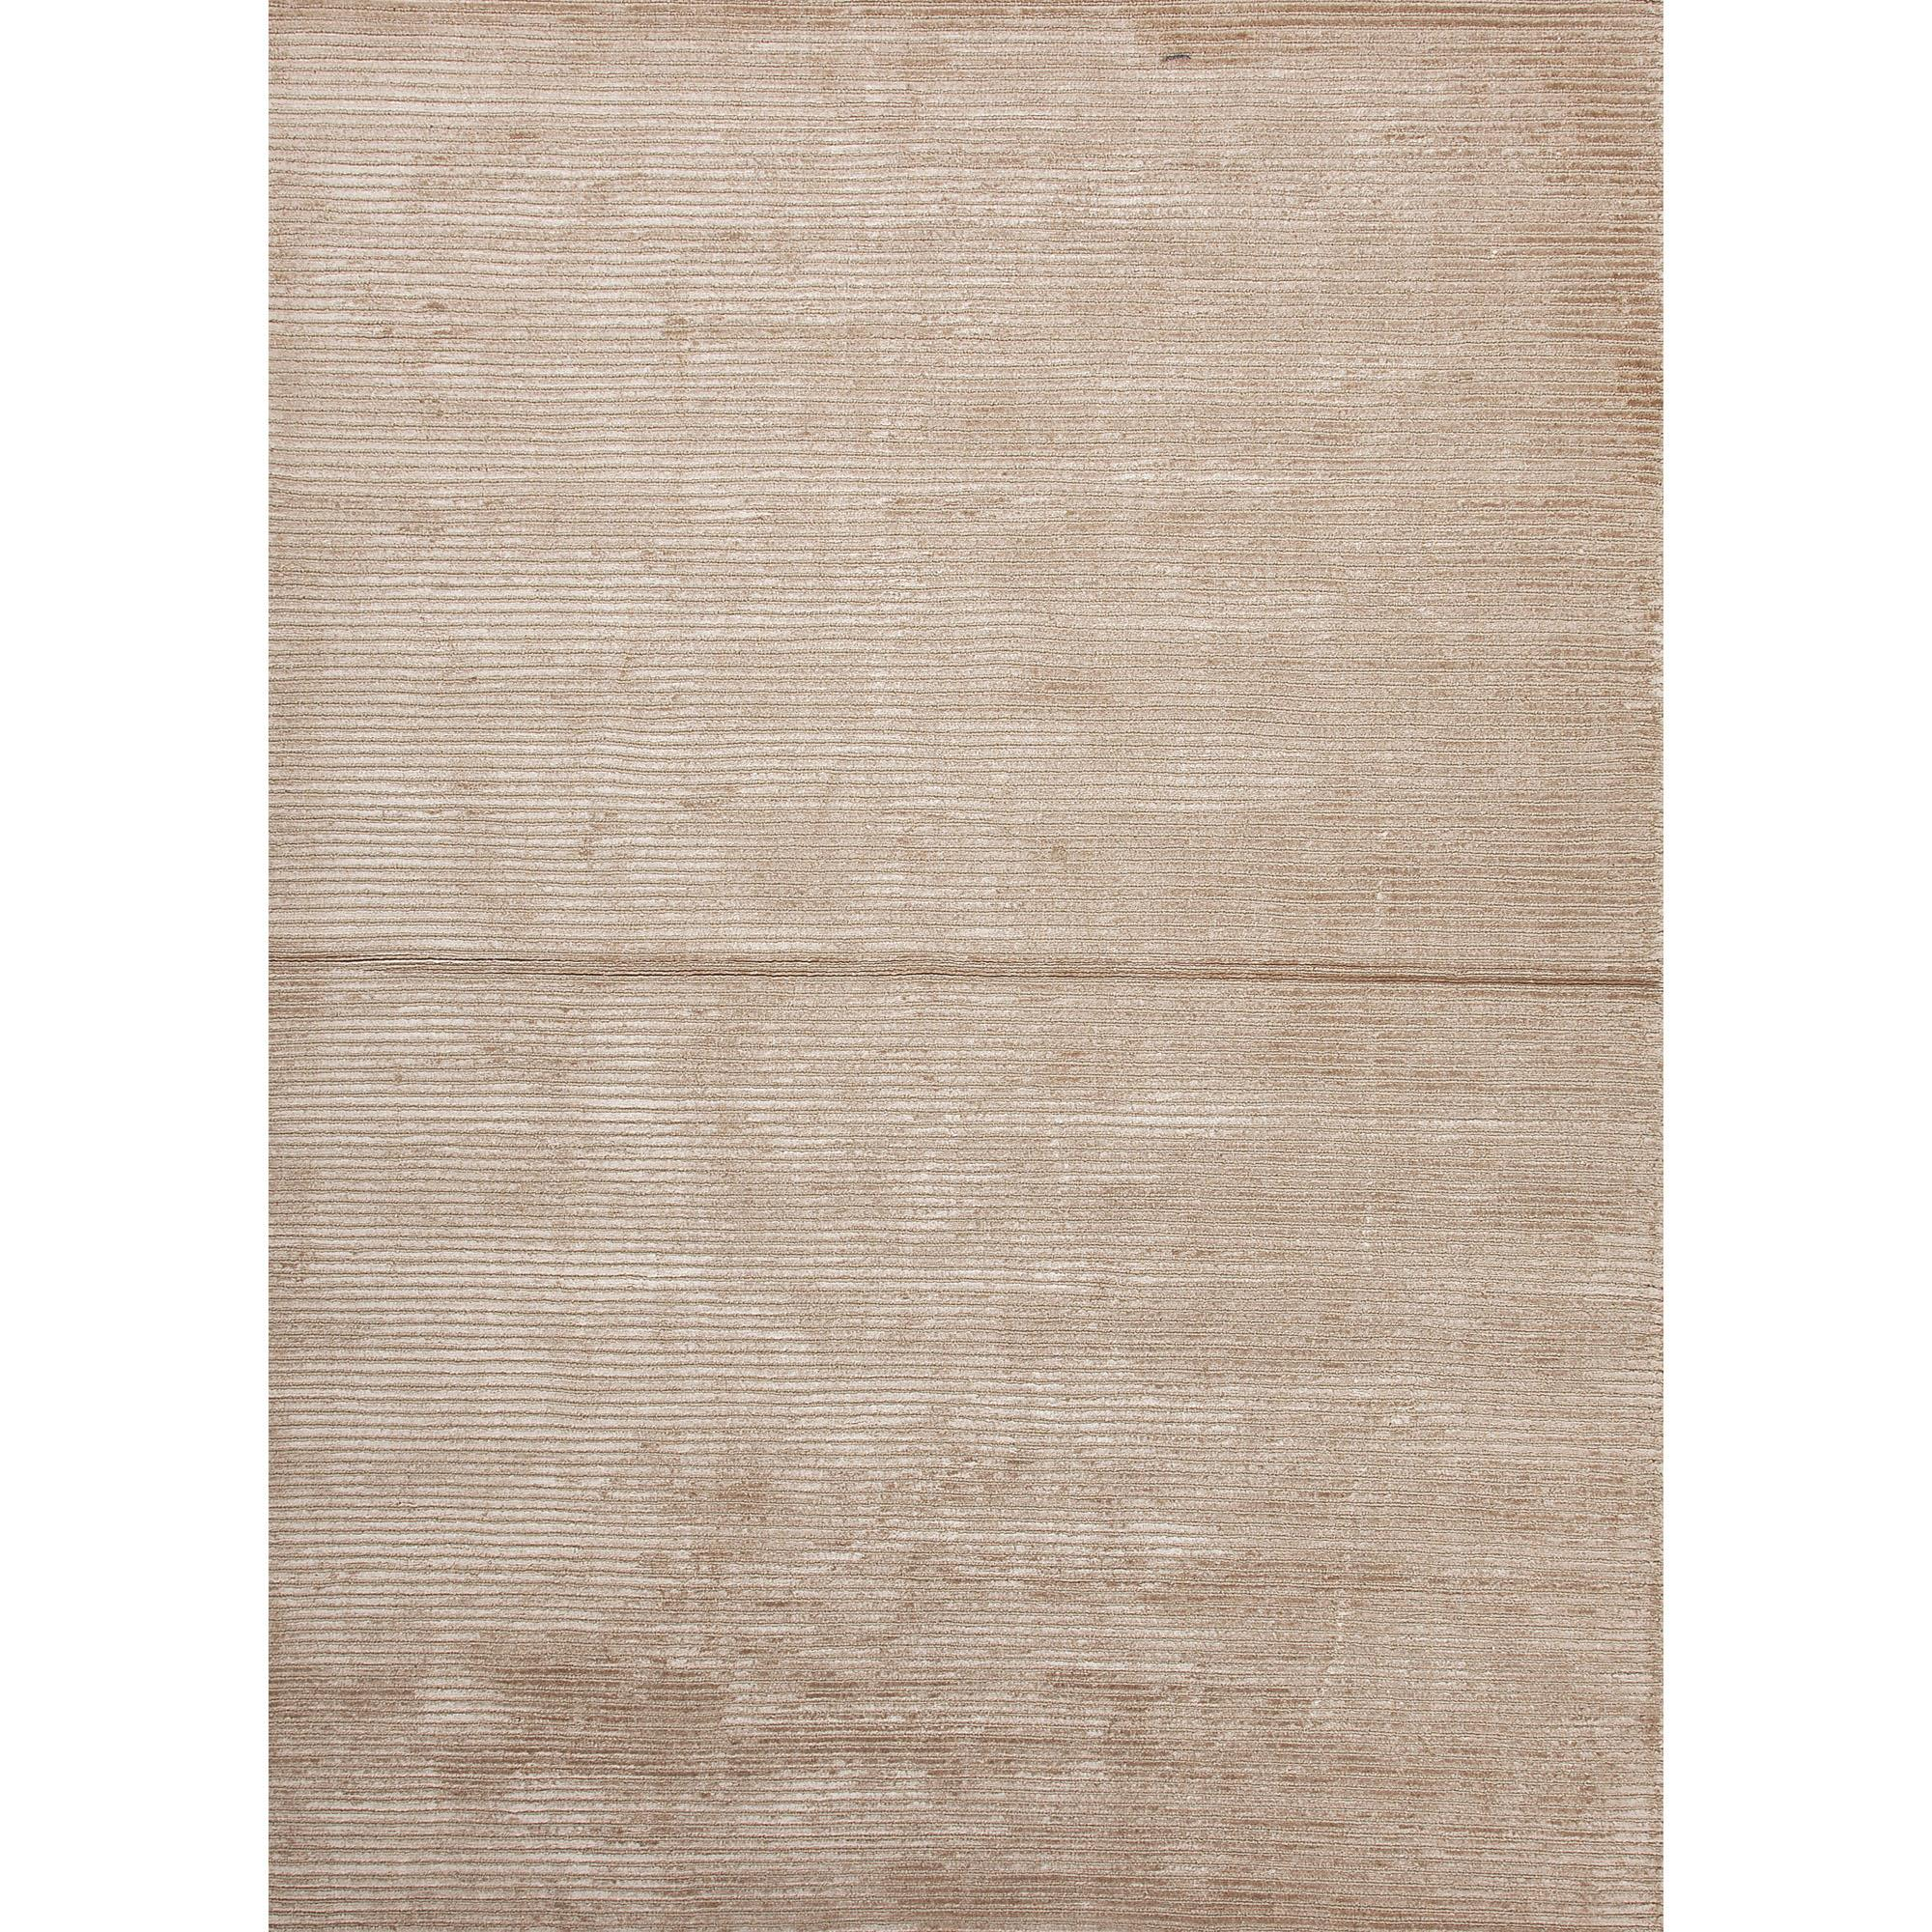 JAIPUR Rugs Basis 2 x 3 Rug - Item Number: RUG100304